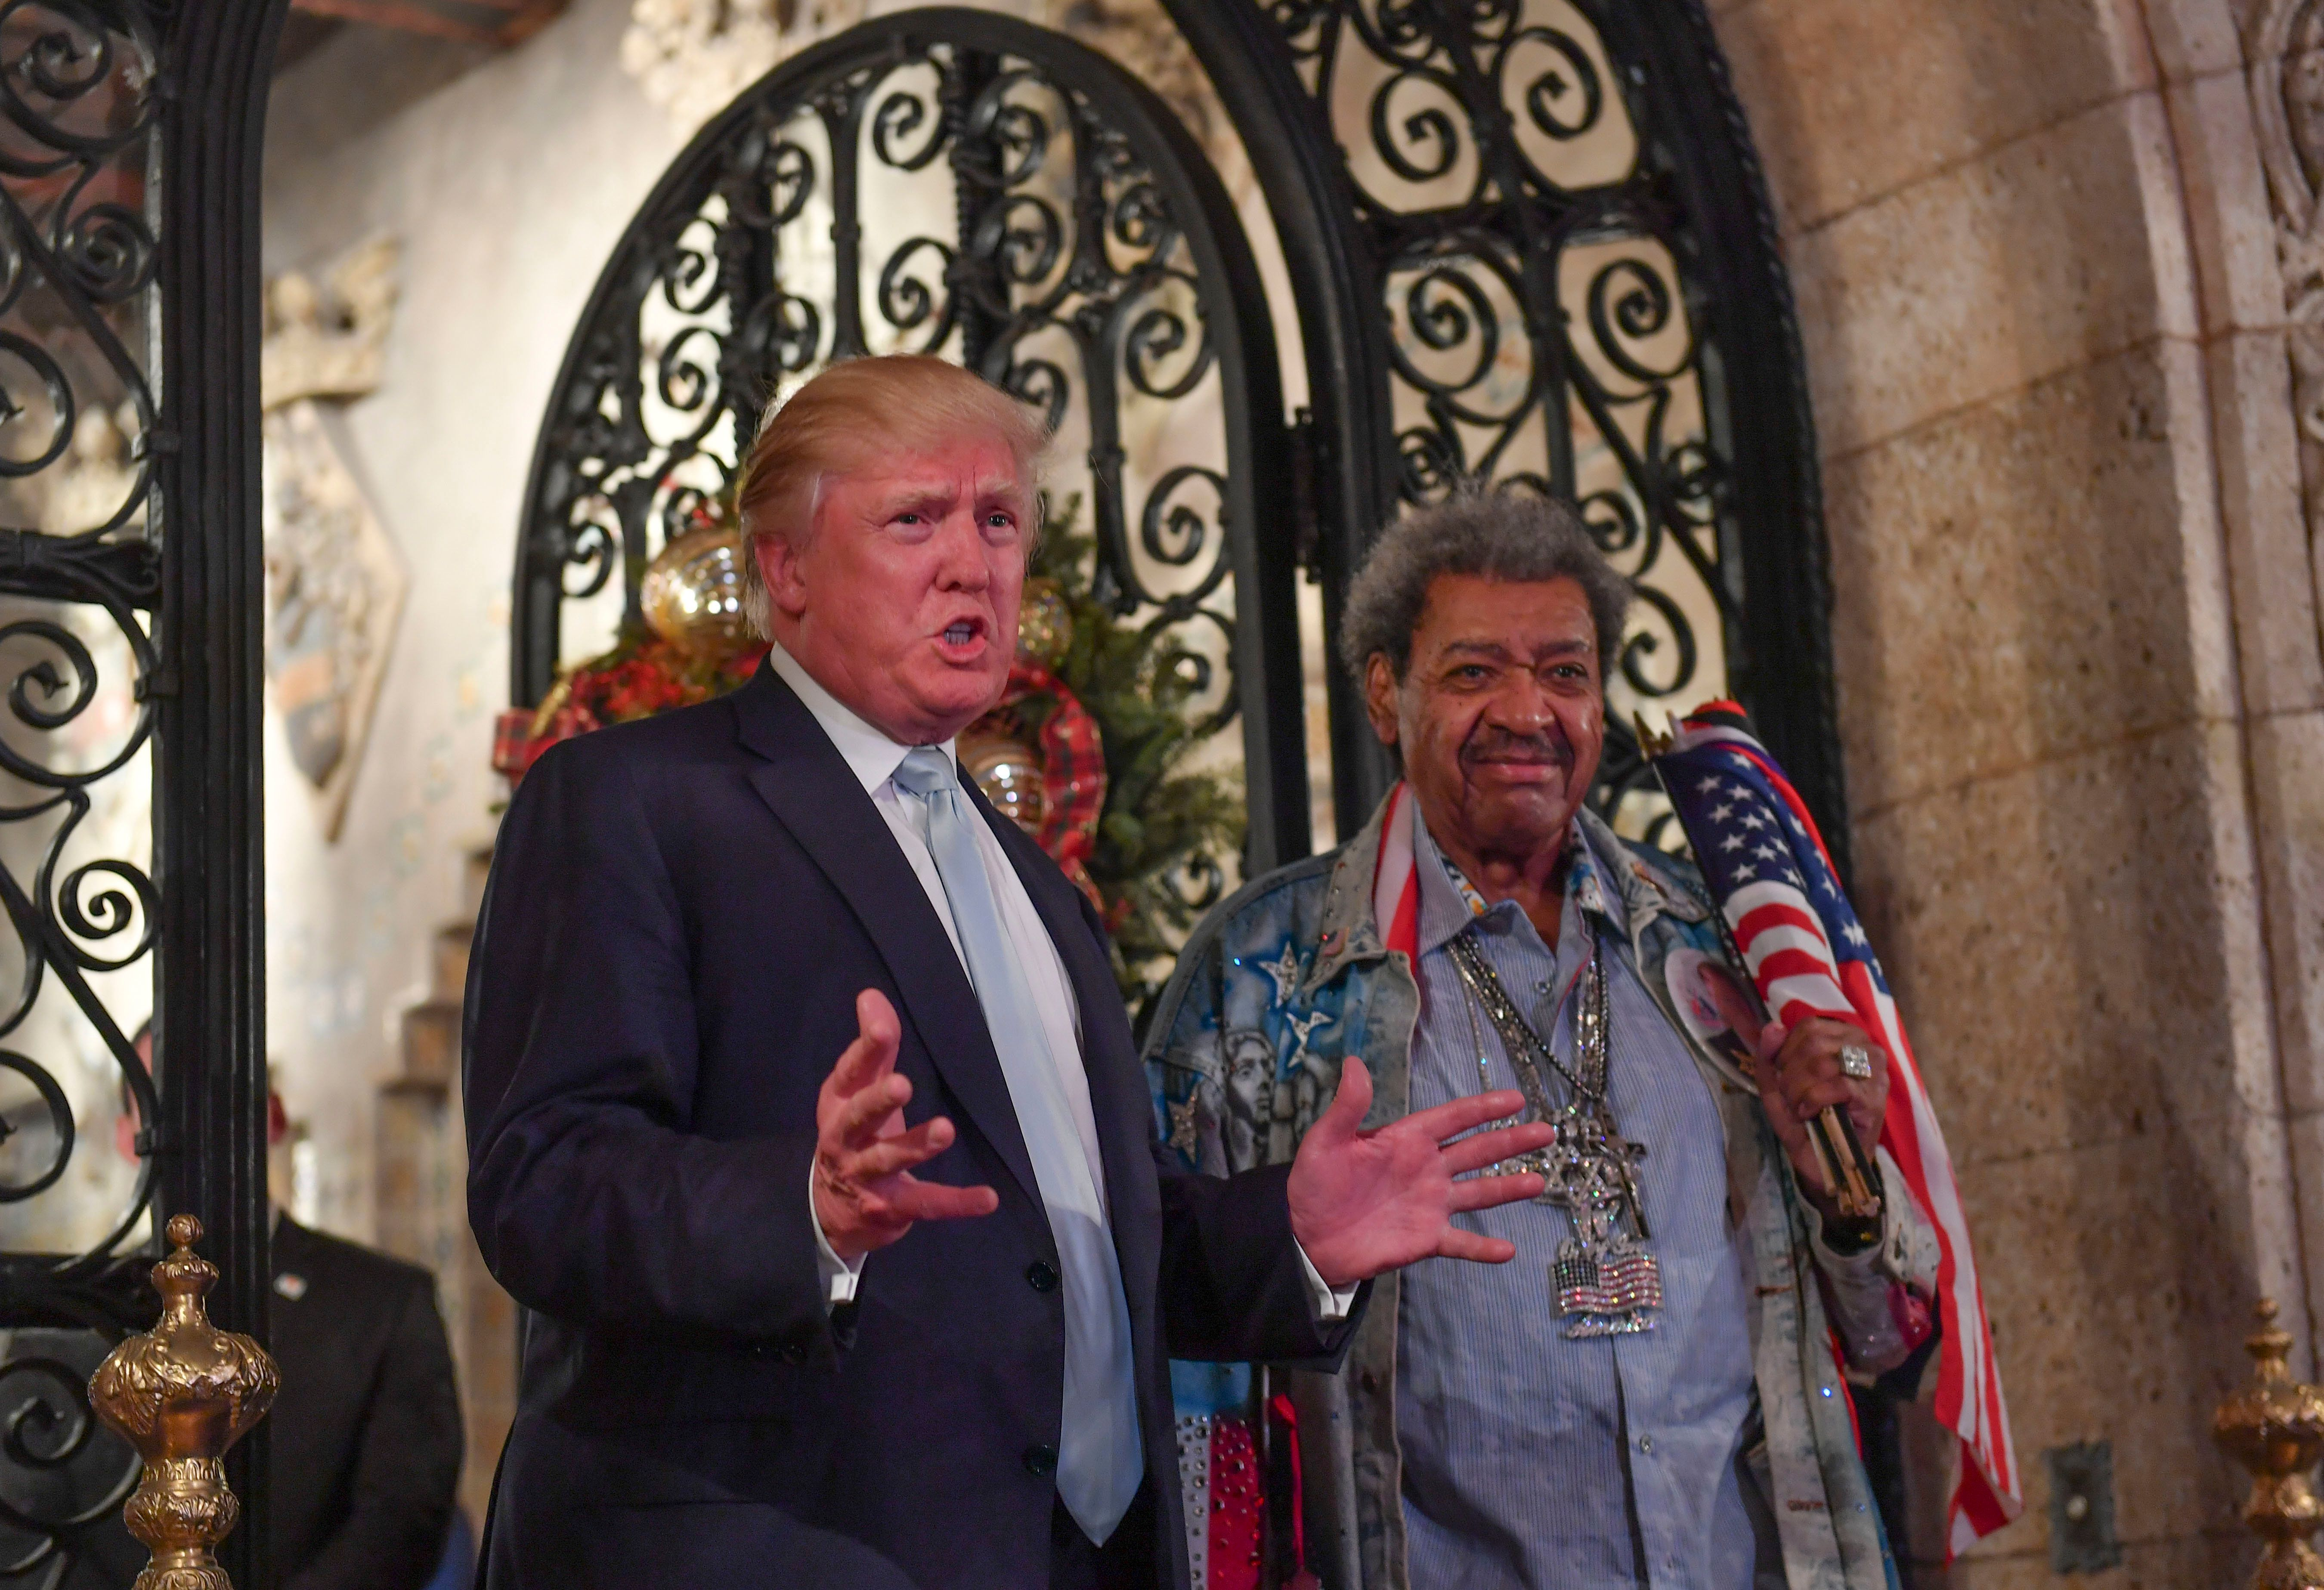 So many parties. Donald Trump stands with fight promoter Don King as they address the media during a party at Mar-a-Lago on D